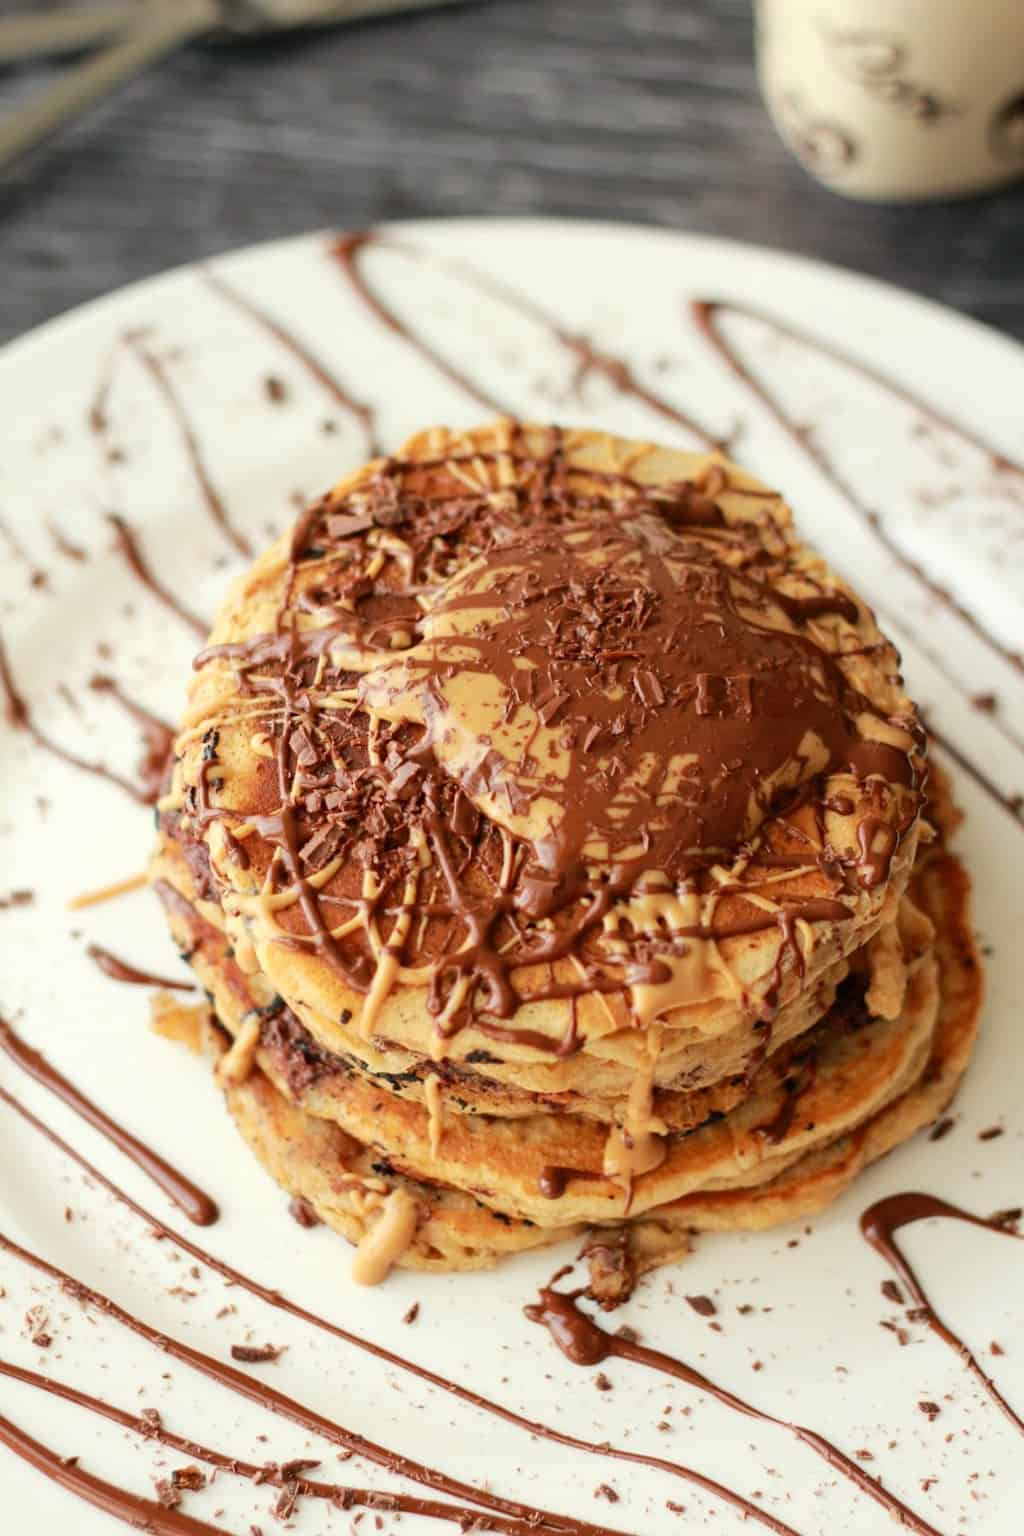 Vegan Chocolate Chip Peanut Butter Pancakes! Soooo good! #vegan #lovingitvegan #dessert #pancakes #breakfast